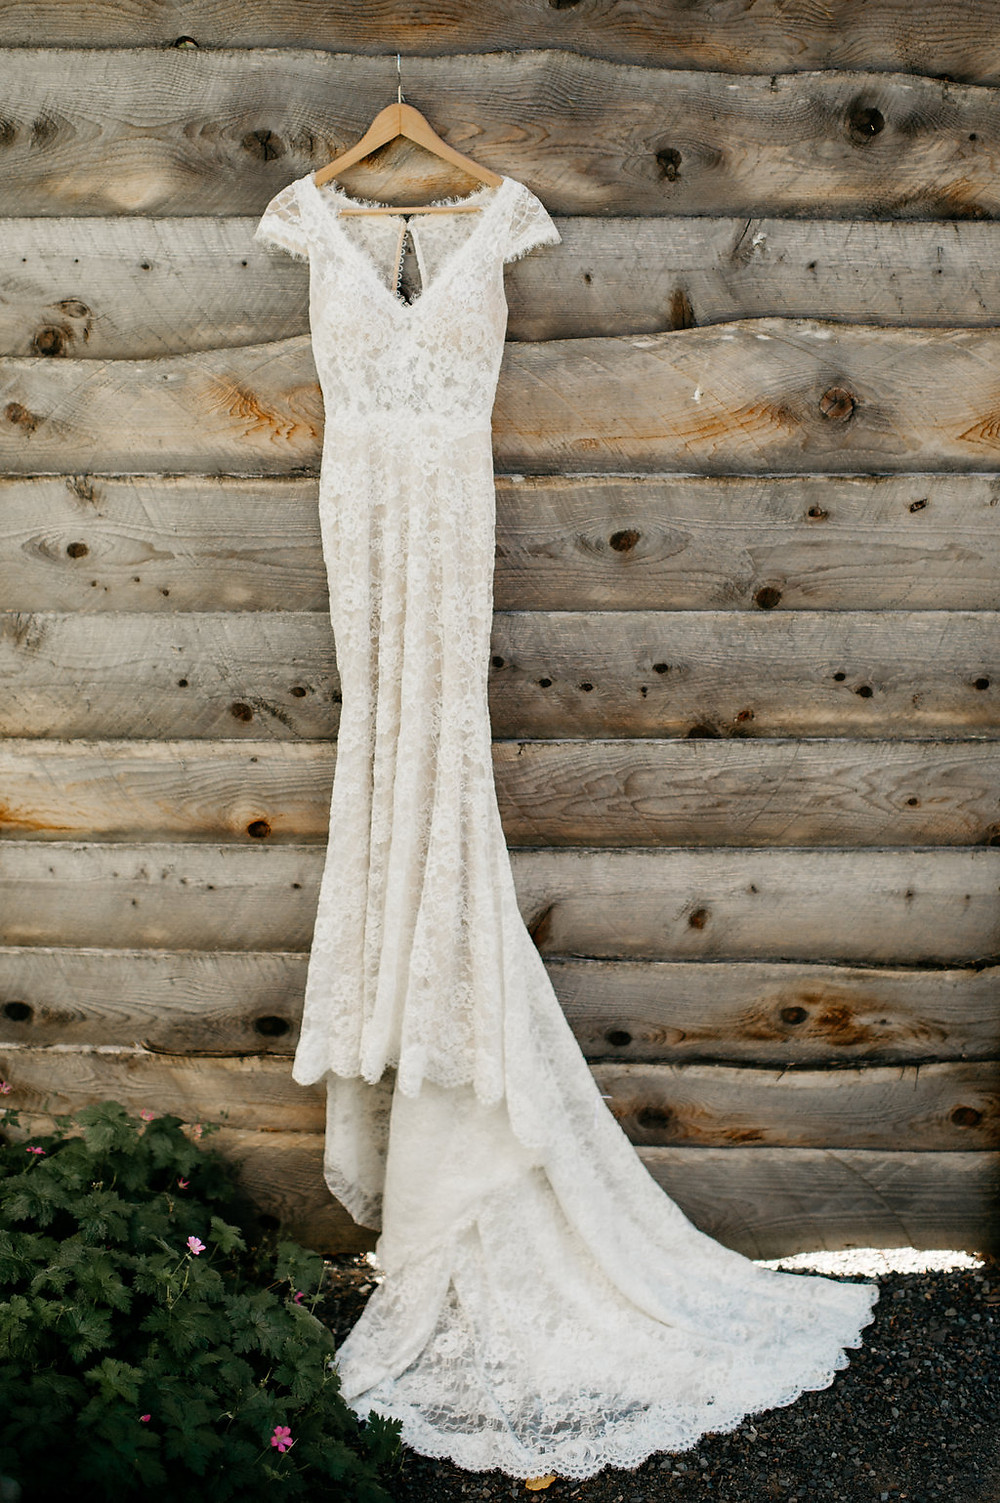 Snohomish Rustic Barn Wedding | Lace Wedding Gown, Cap Sleeves